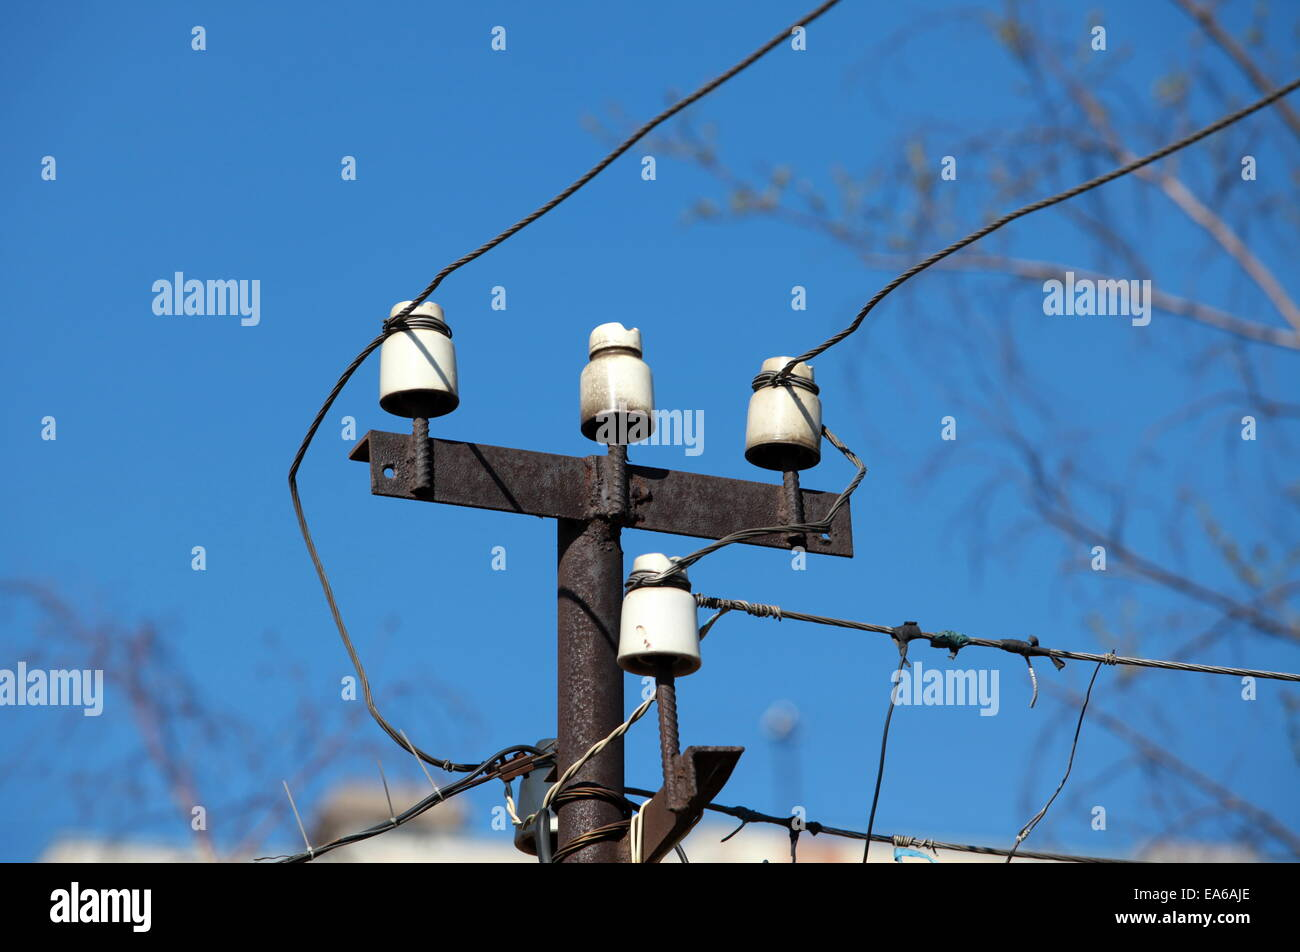 Electric Cable Wires Stock Photos Amp Electric Cable Wires